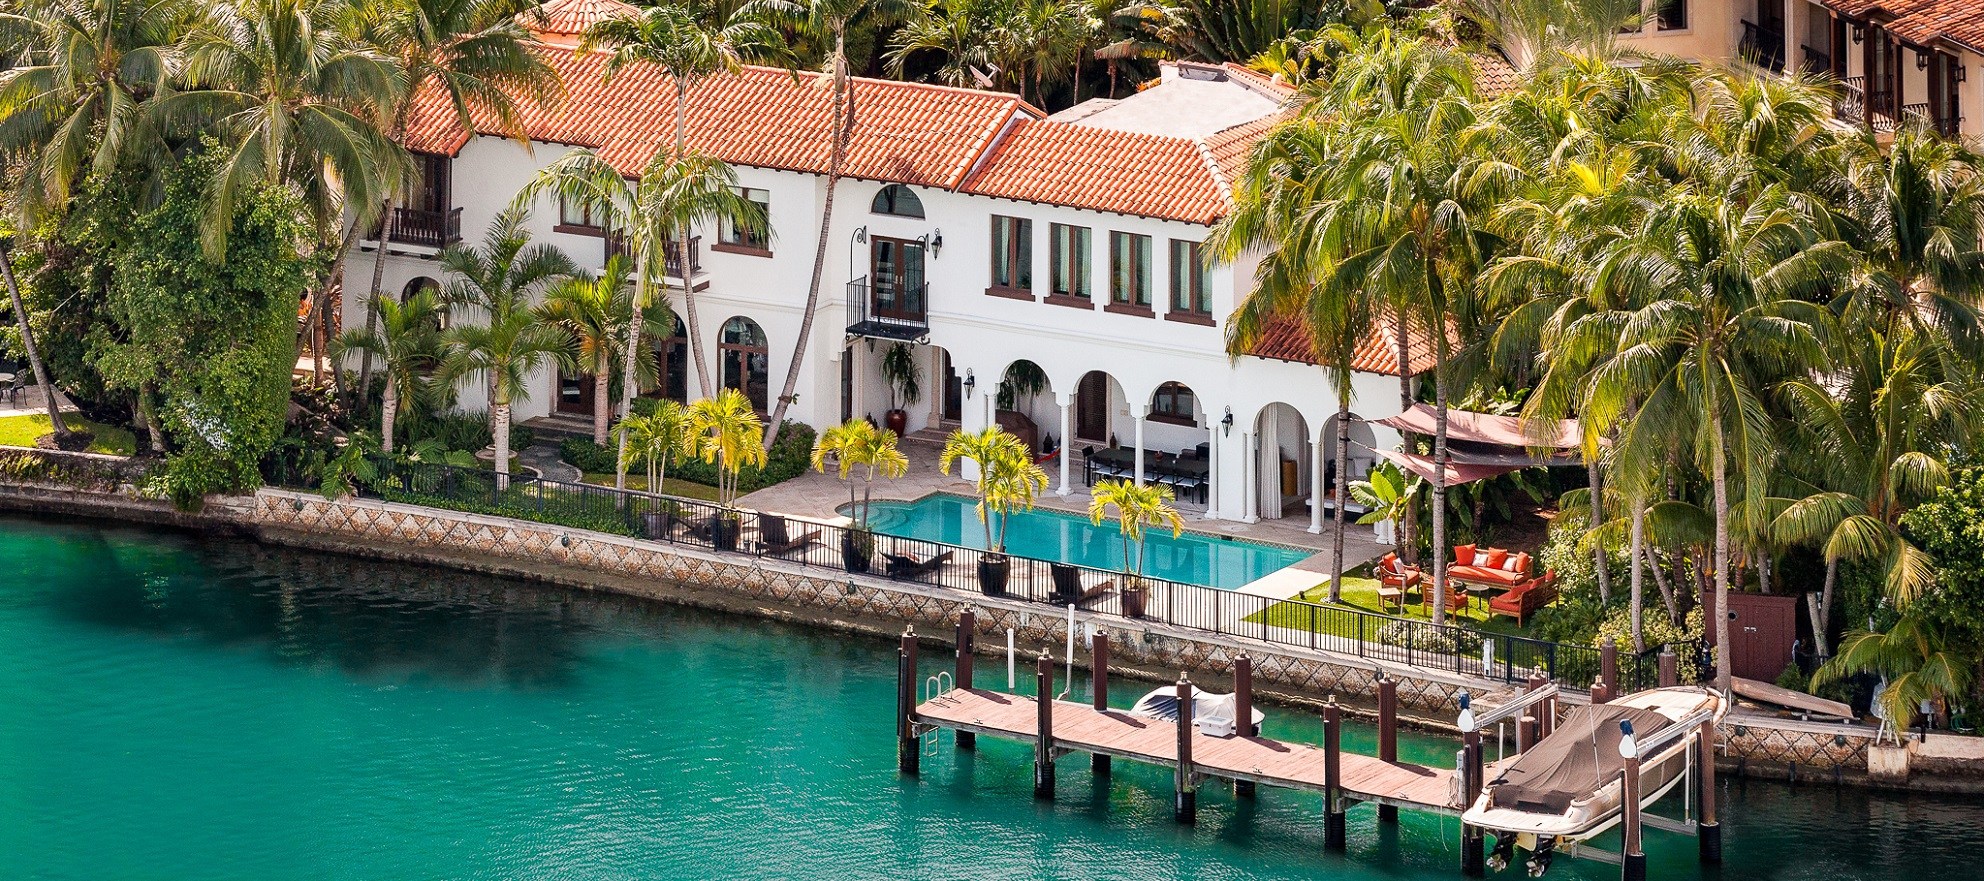 Luxury listing: old world meets modern waterfront estate